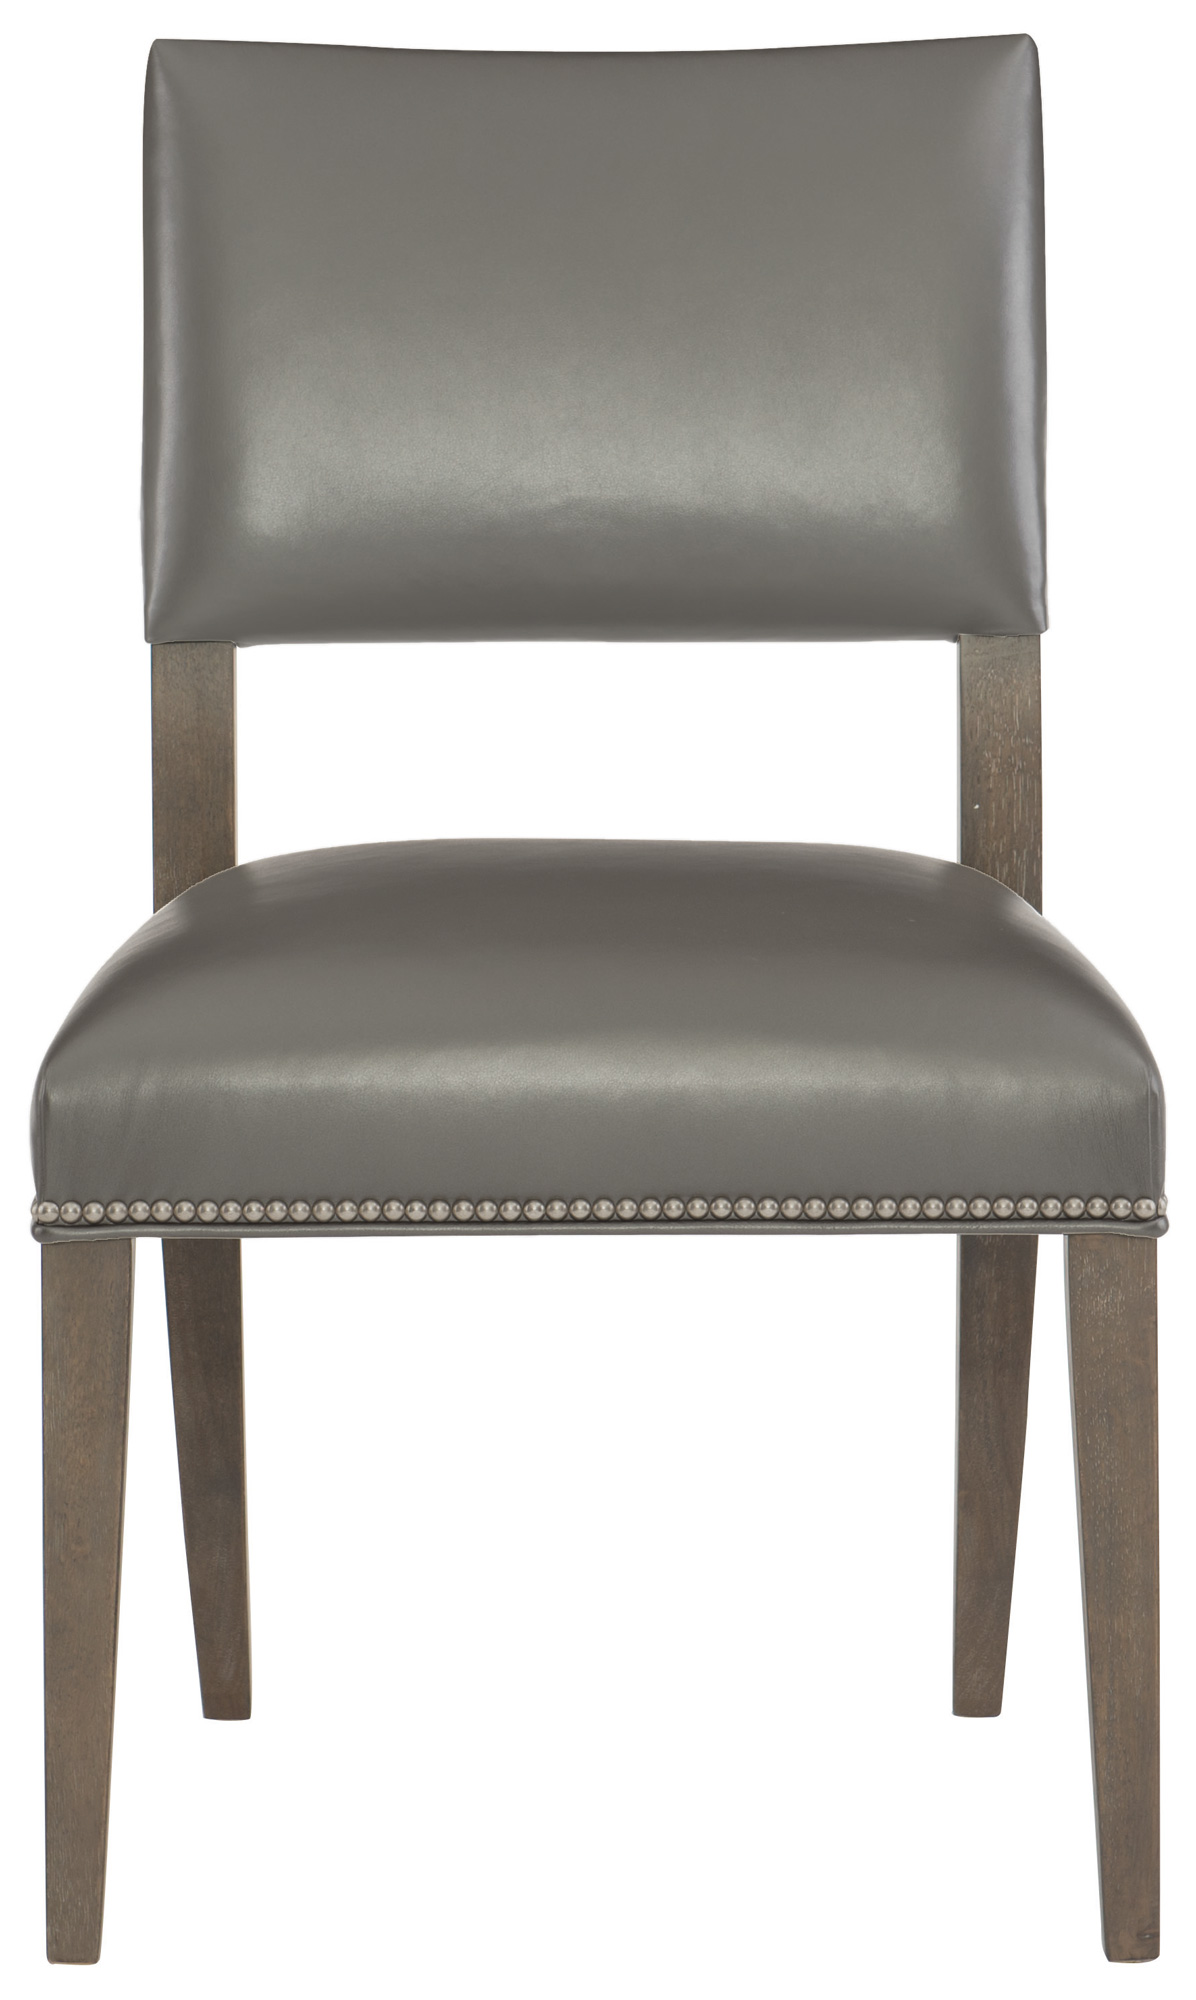 leather side chairs. Leather Side Chairs